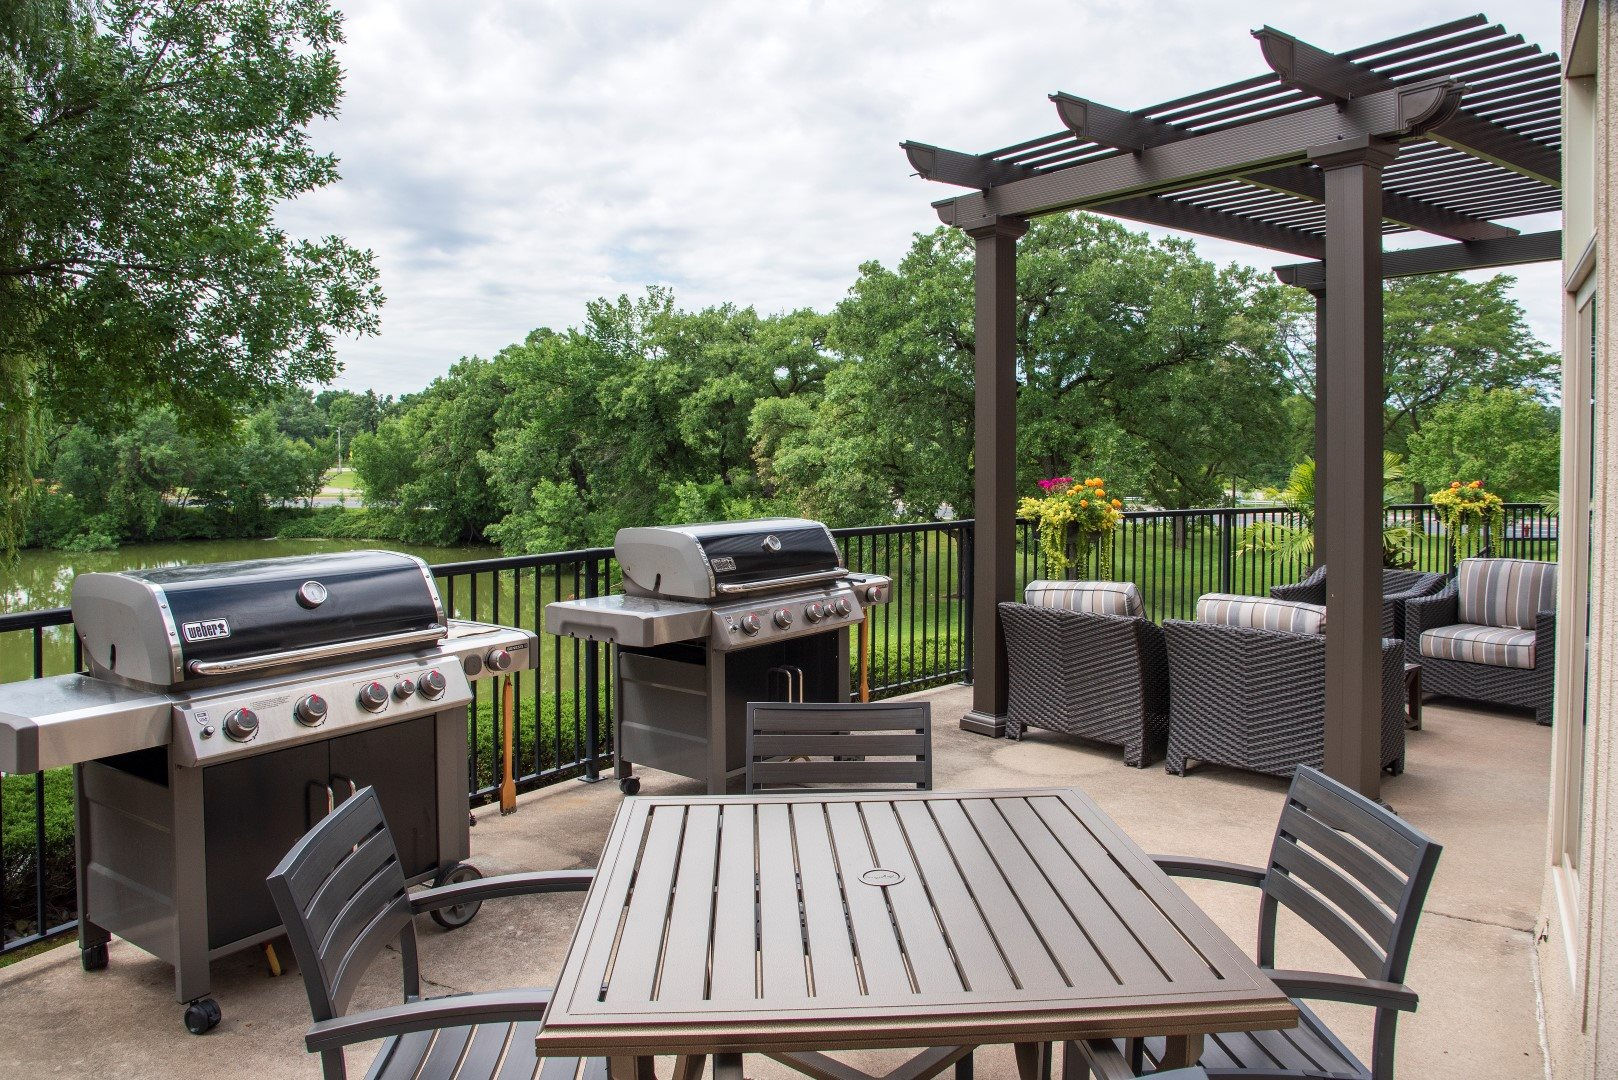 Outdoor patio with gas grills and seating